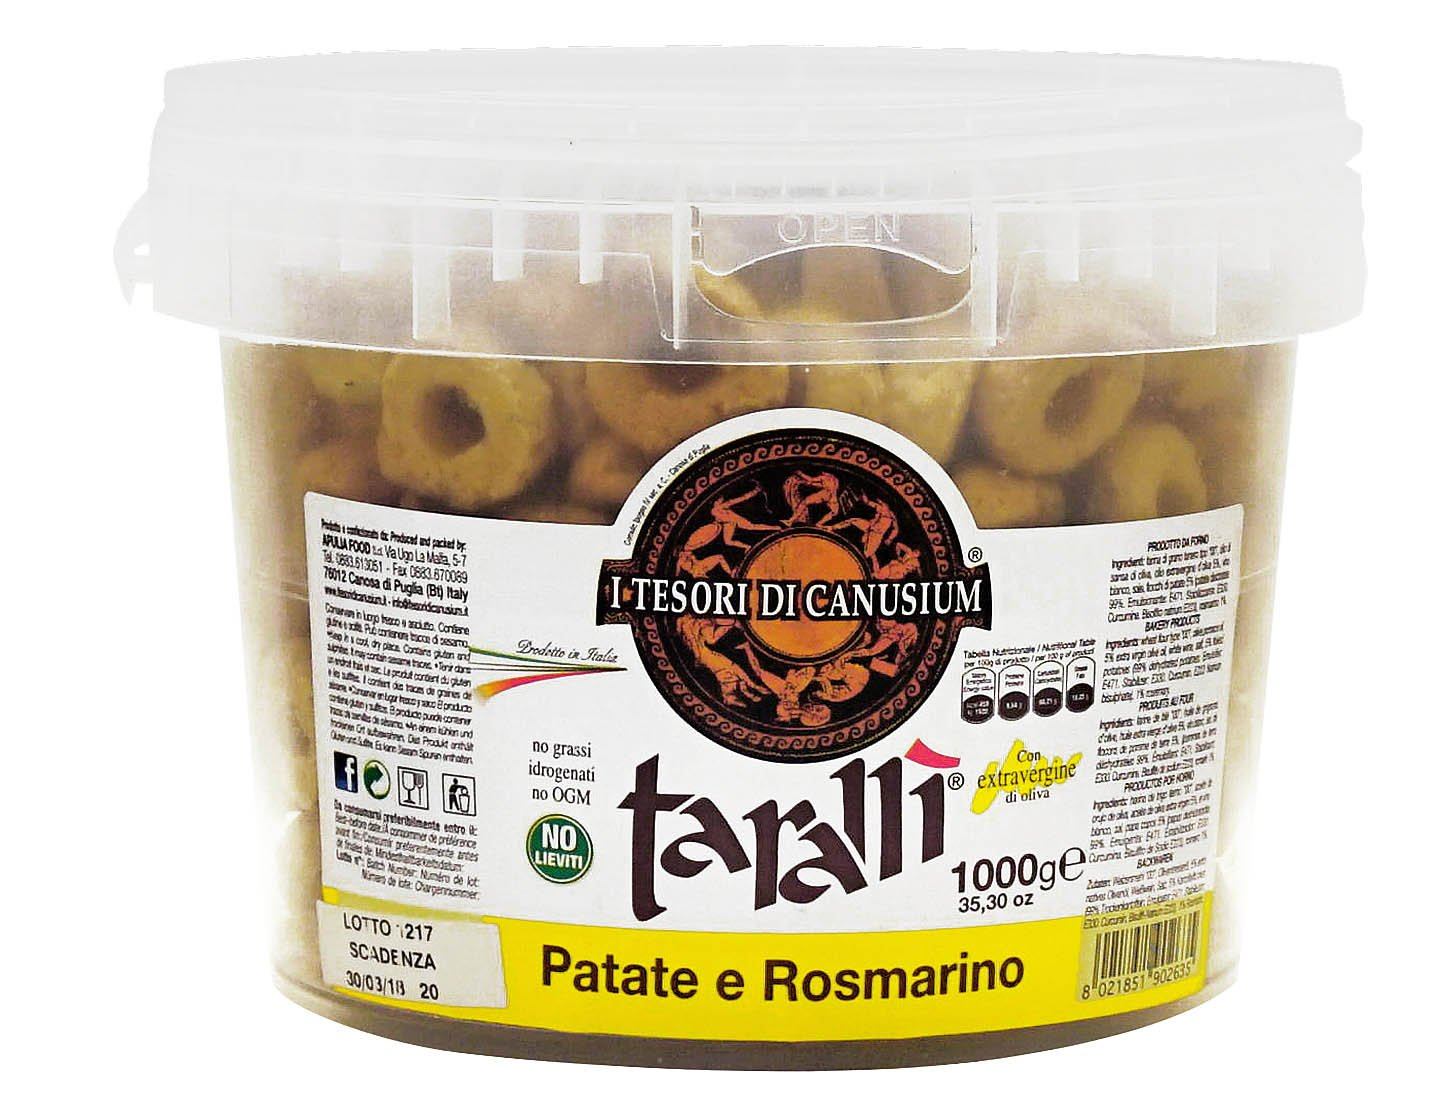 I Tesori di Canusium: ''Patate e Rosmarino'' Italian Taralli, Potatoes and Rosemary Taste - 35.3 Ounces (1000gr) Package [ Italian Import ]